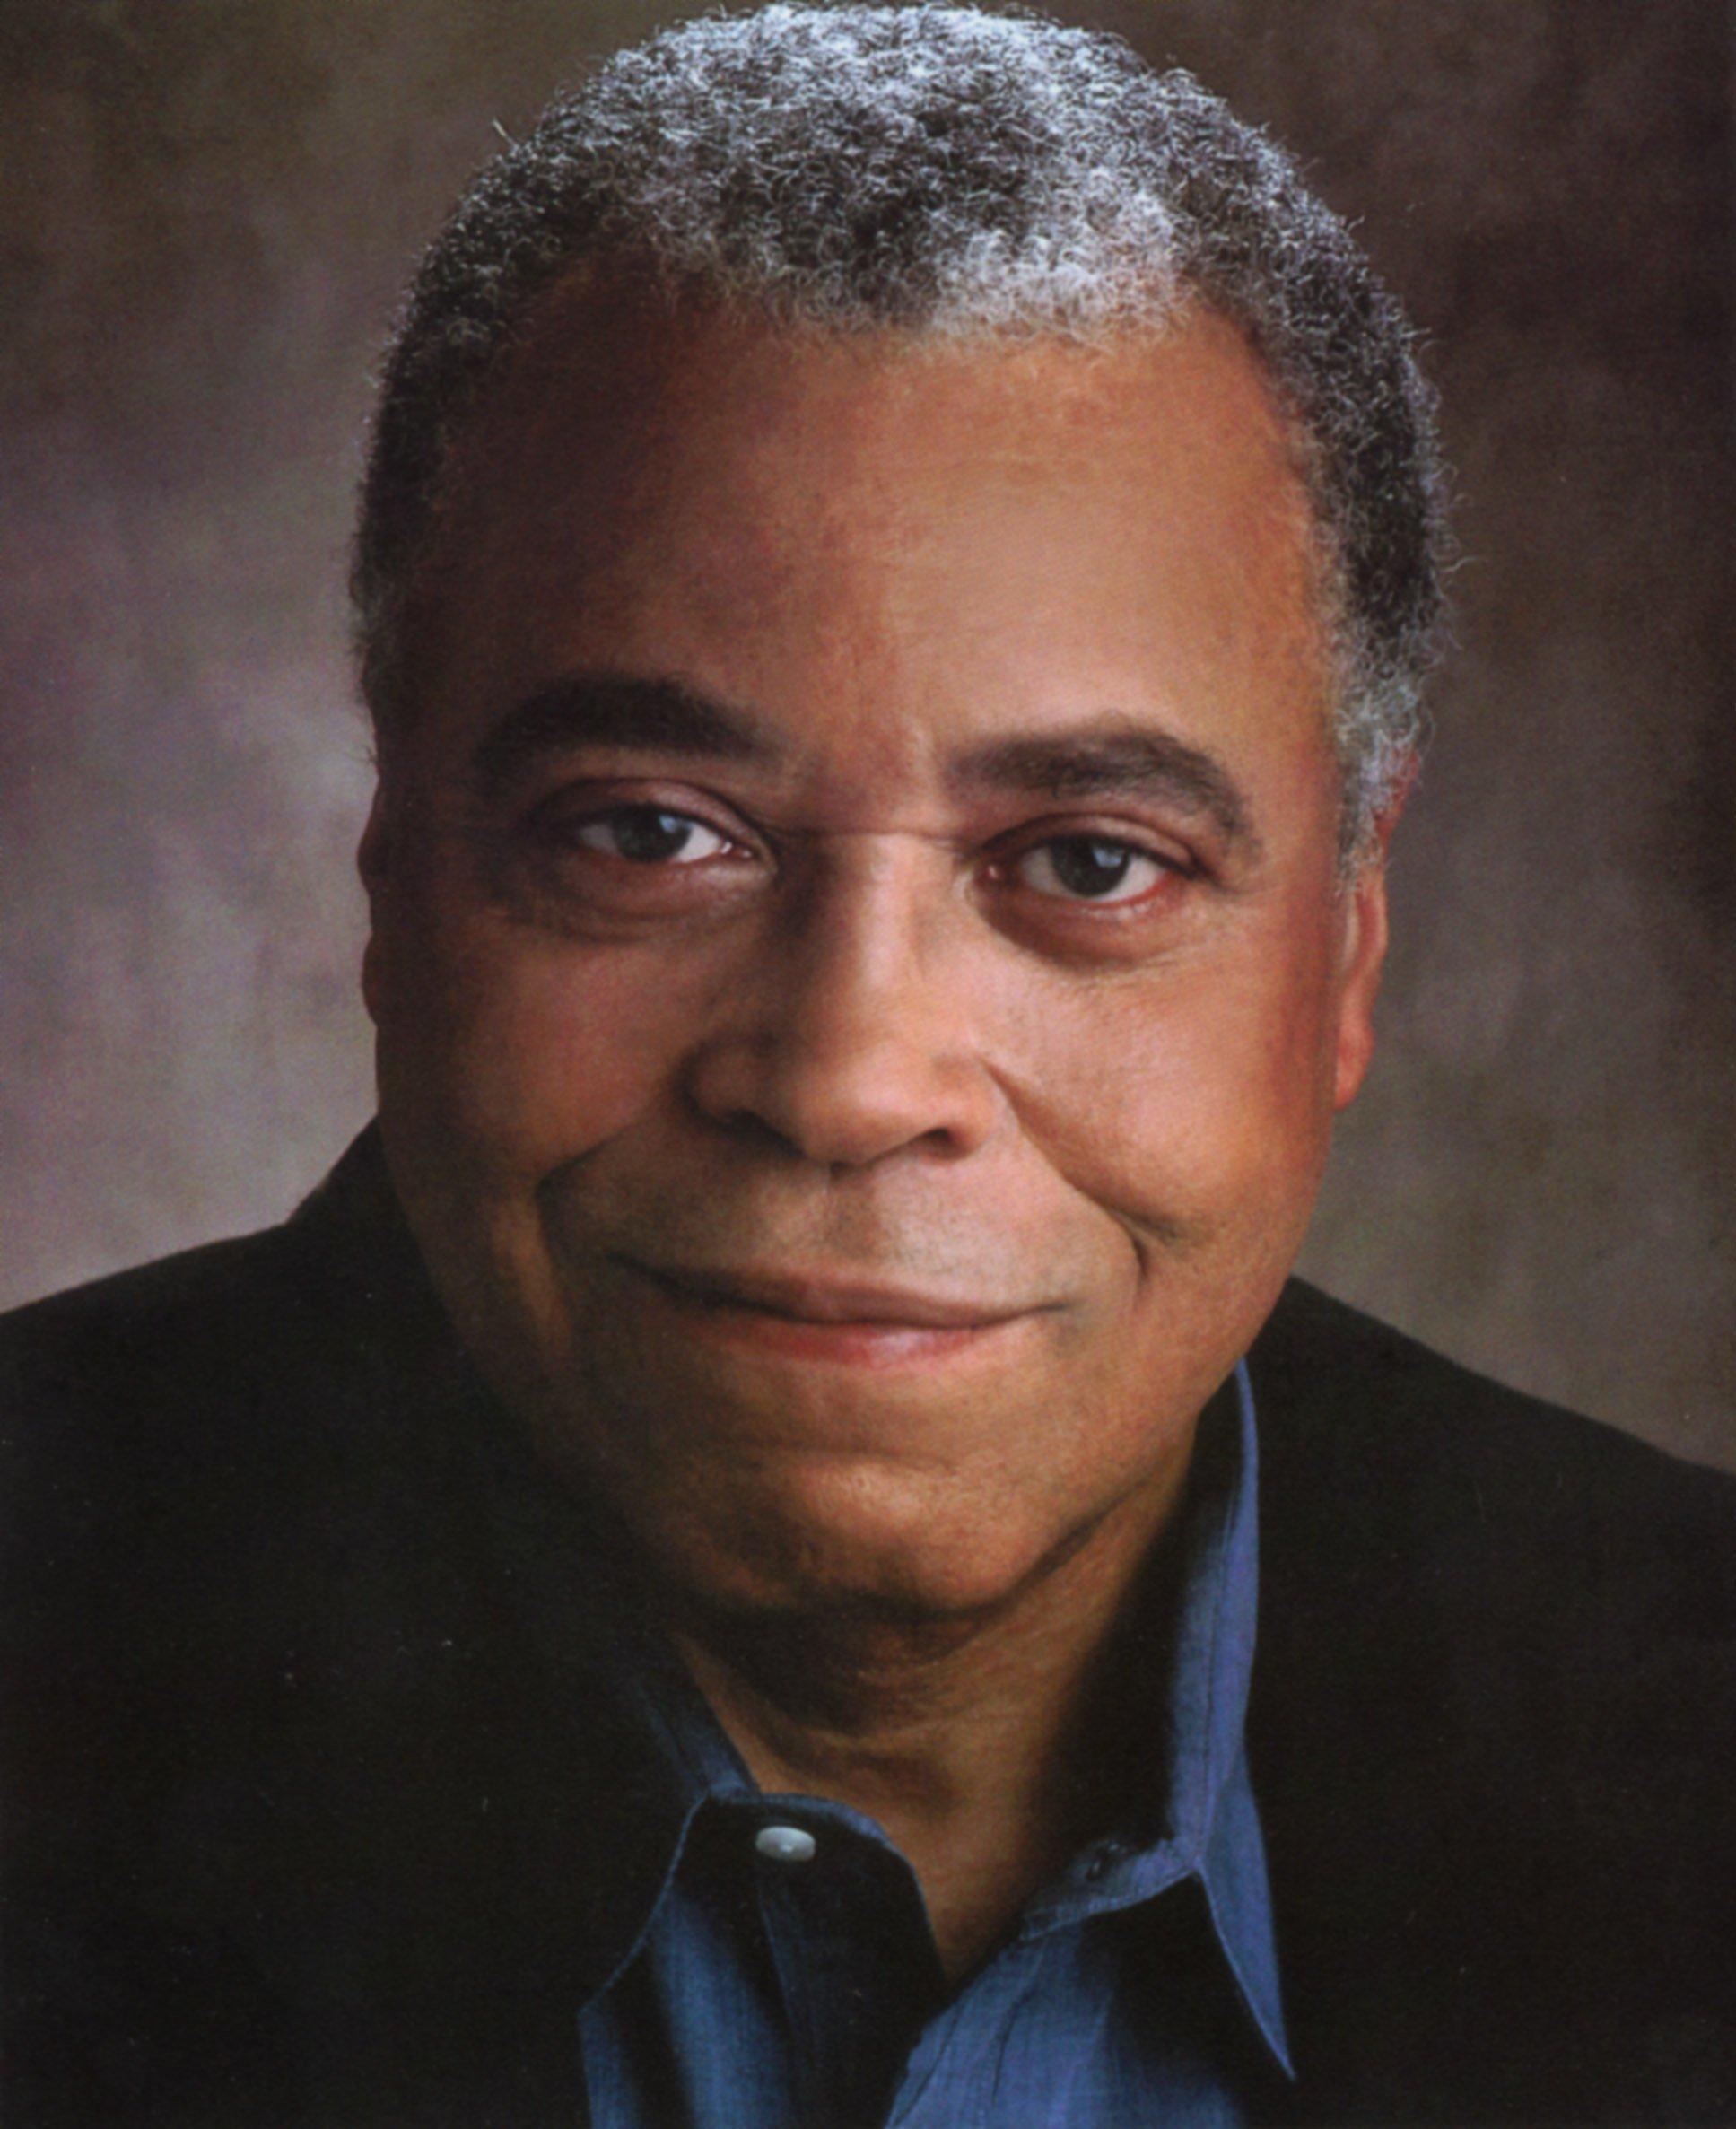 Legendary actor and activist James Earl Jones was in the ROTC in college and graduated from Army Ranger school.